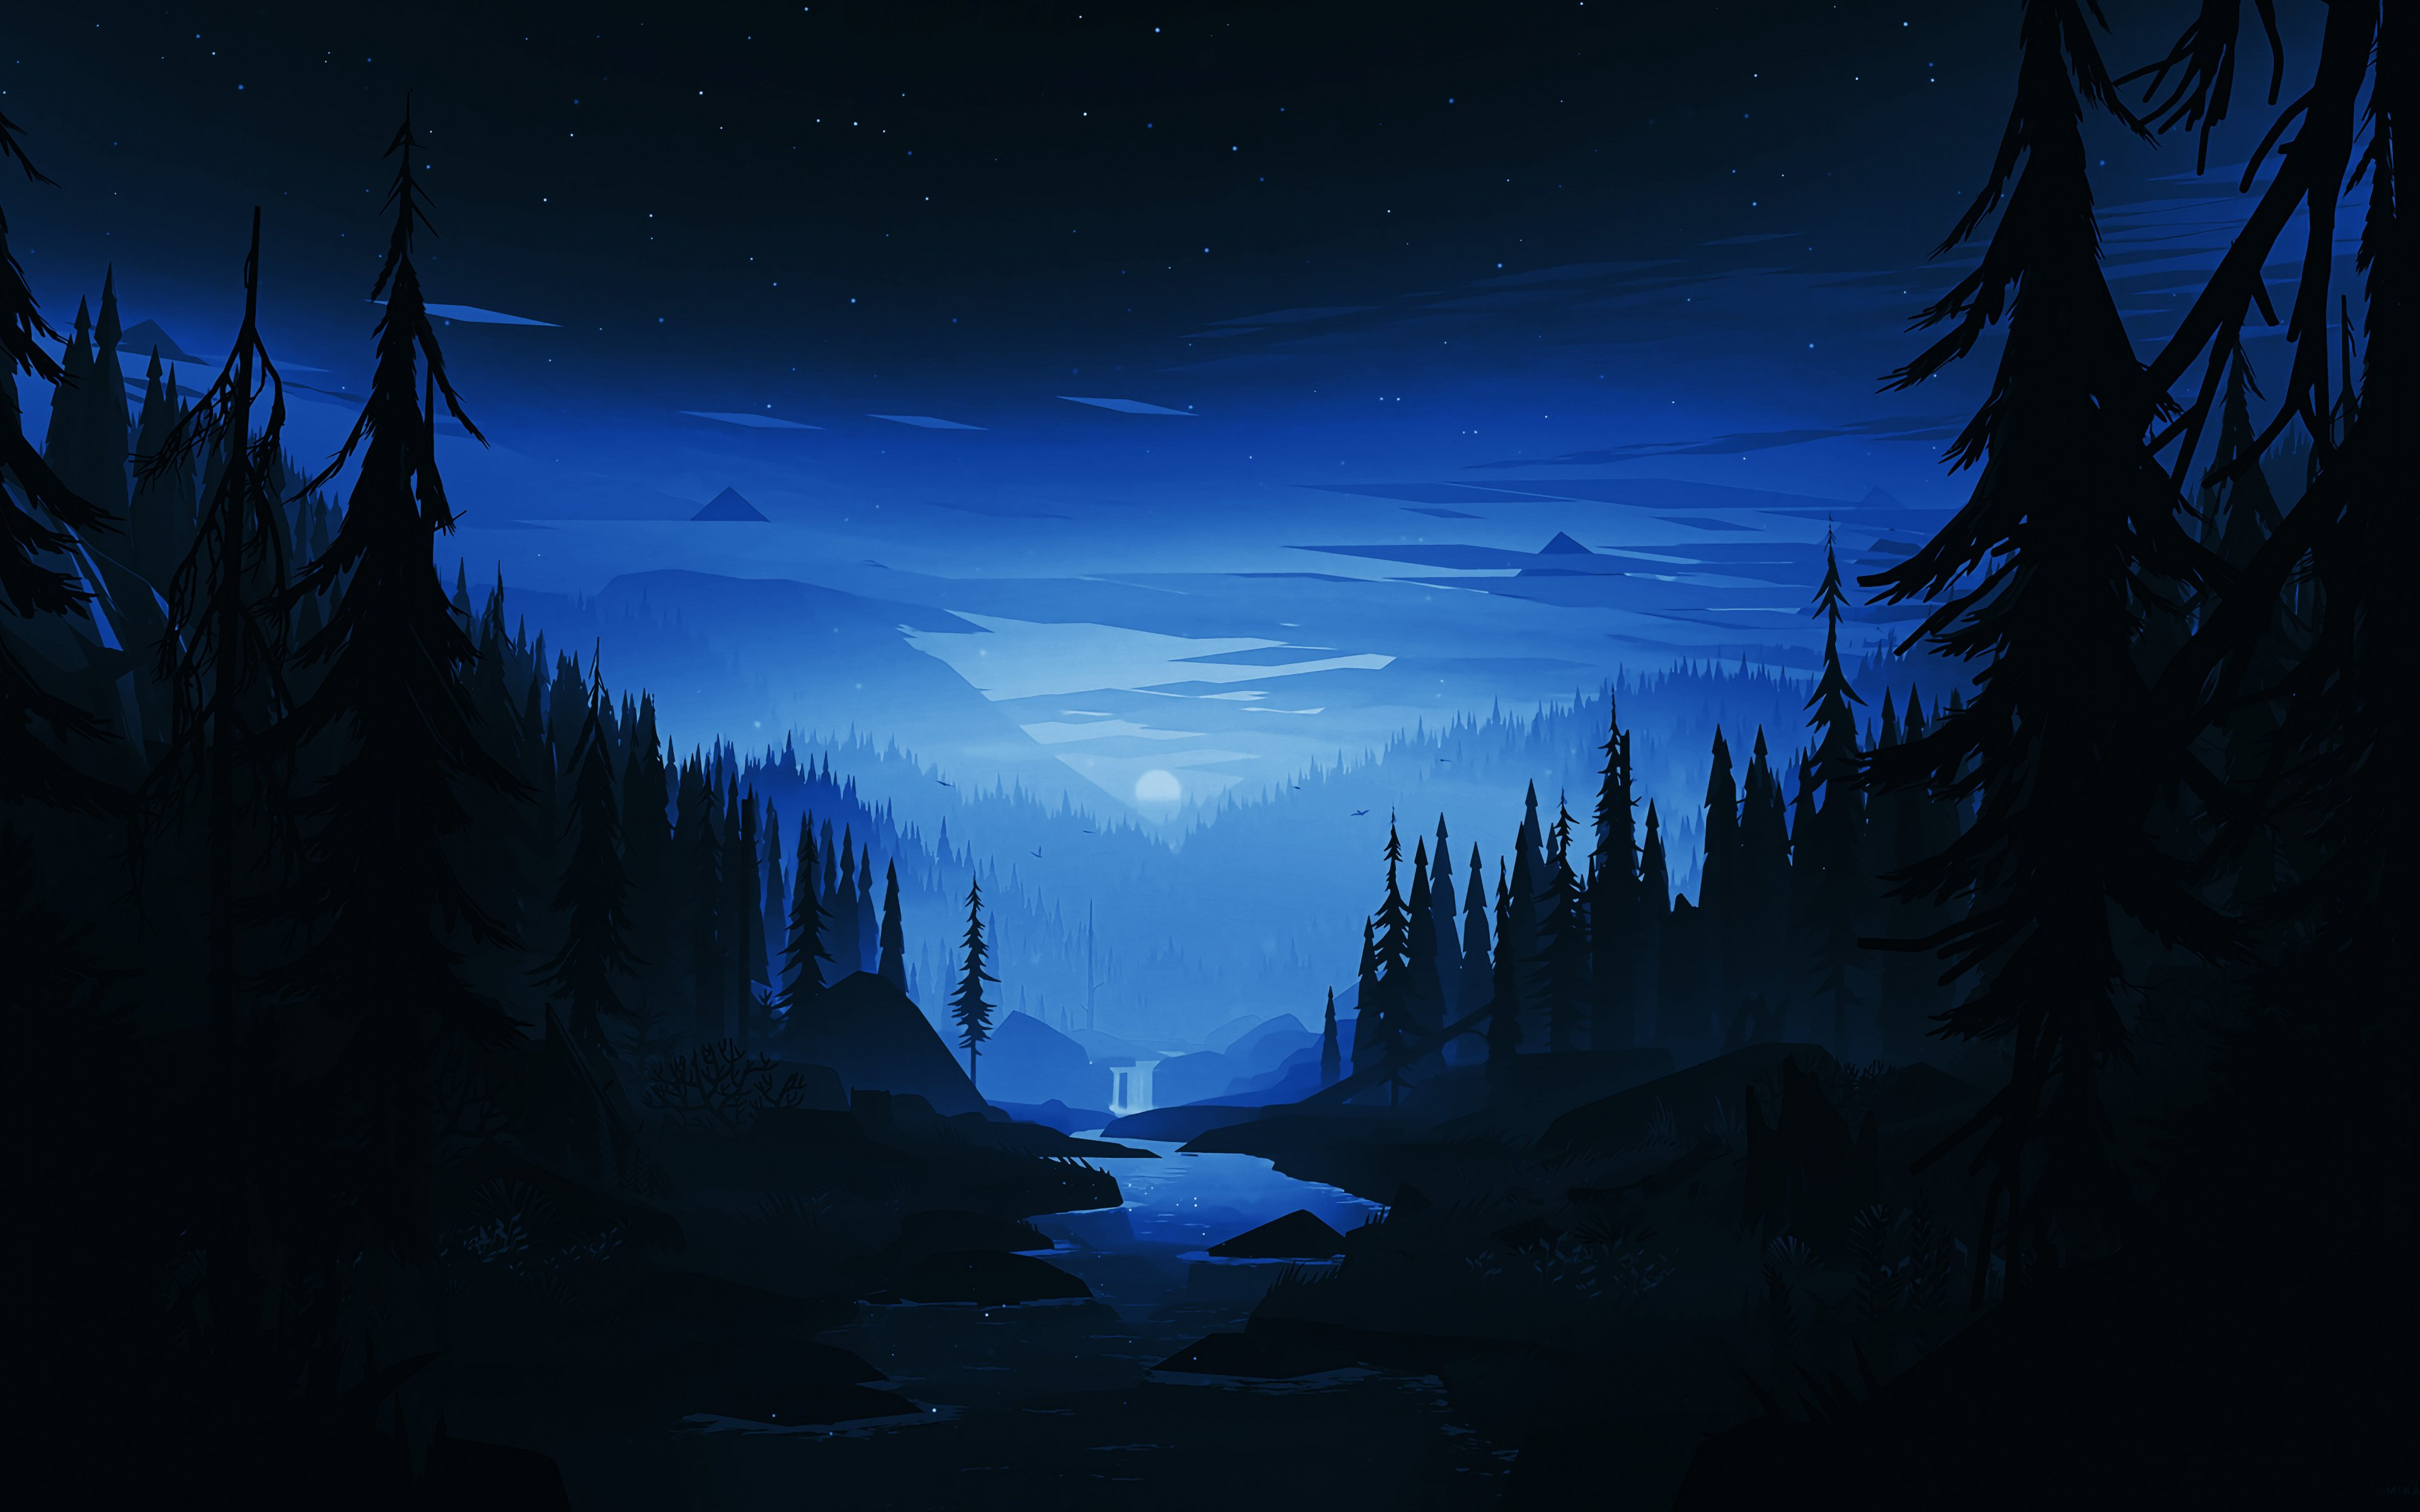 Download 3840x2400 wallpapers dark night, river, forest, minimal